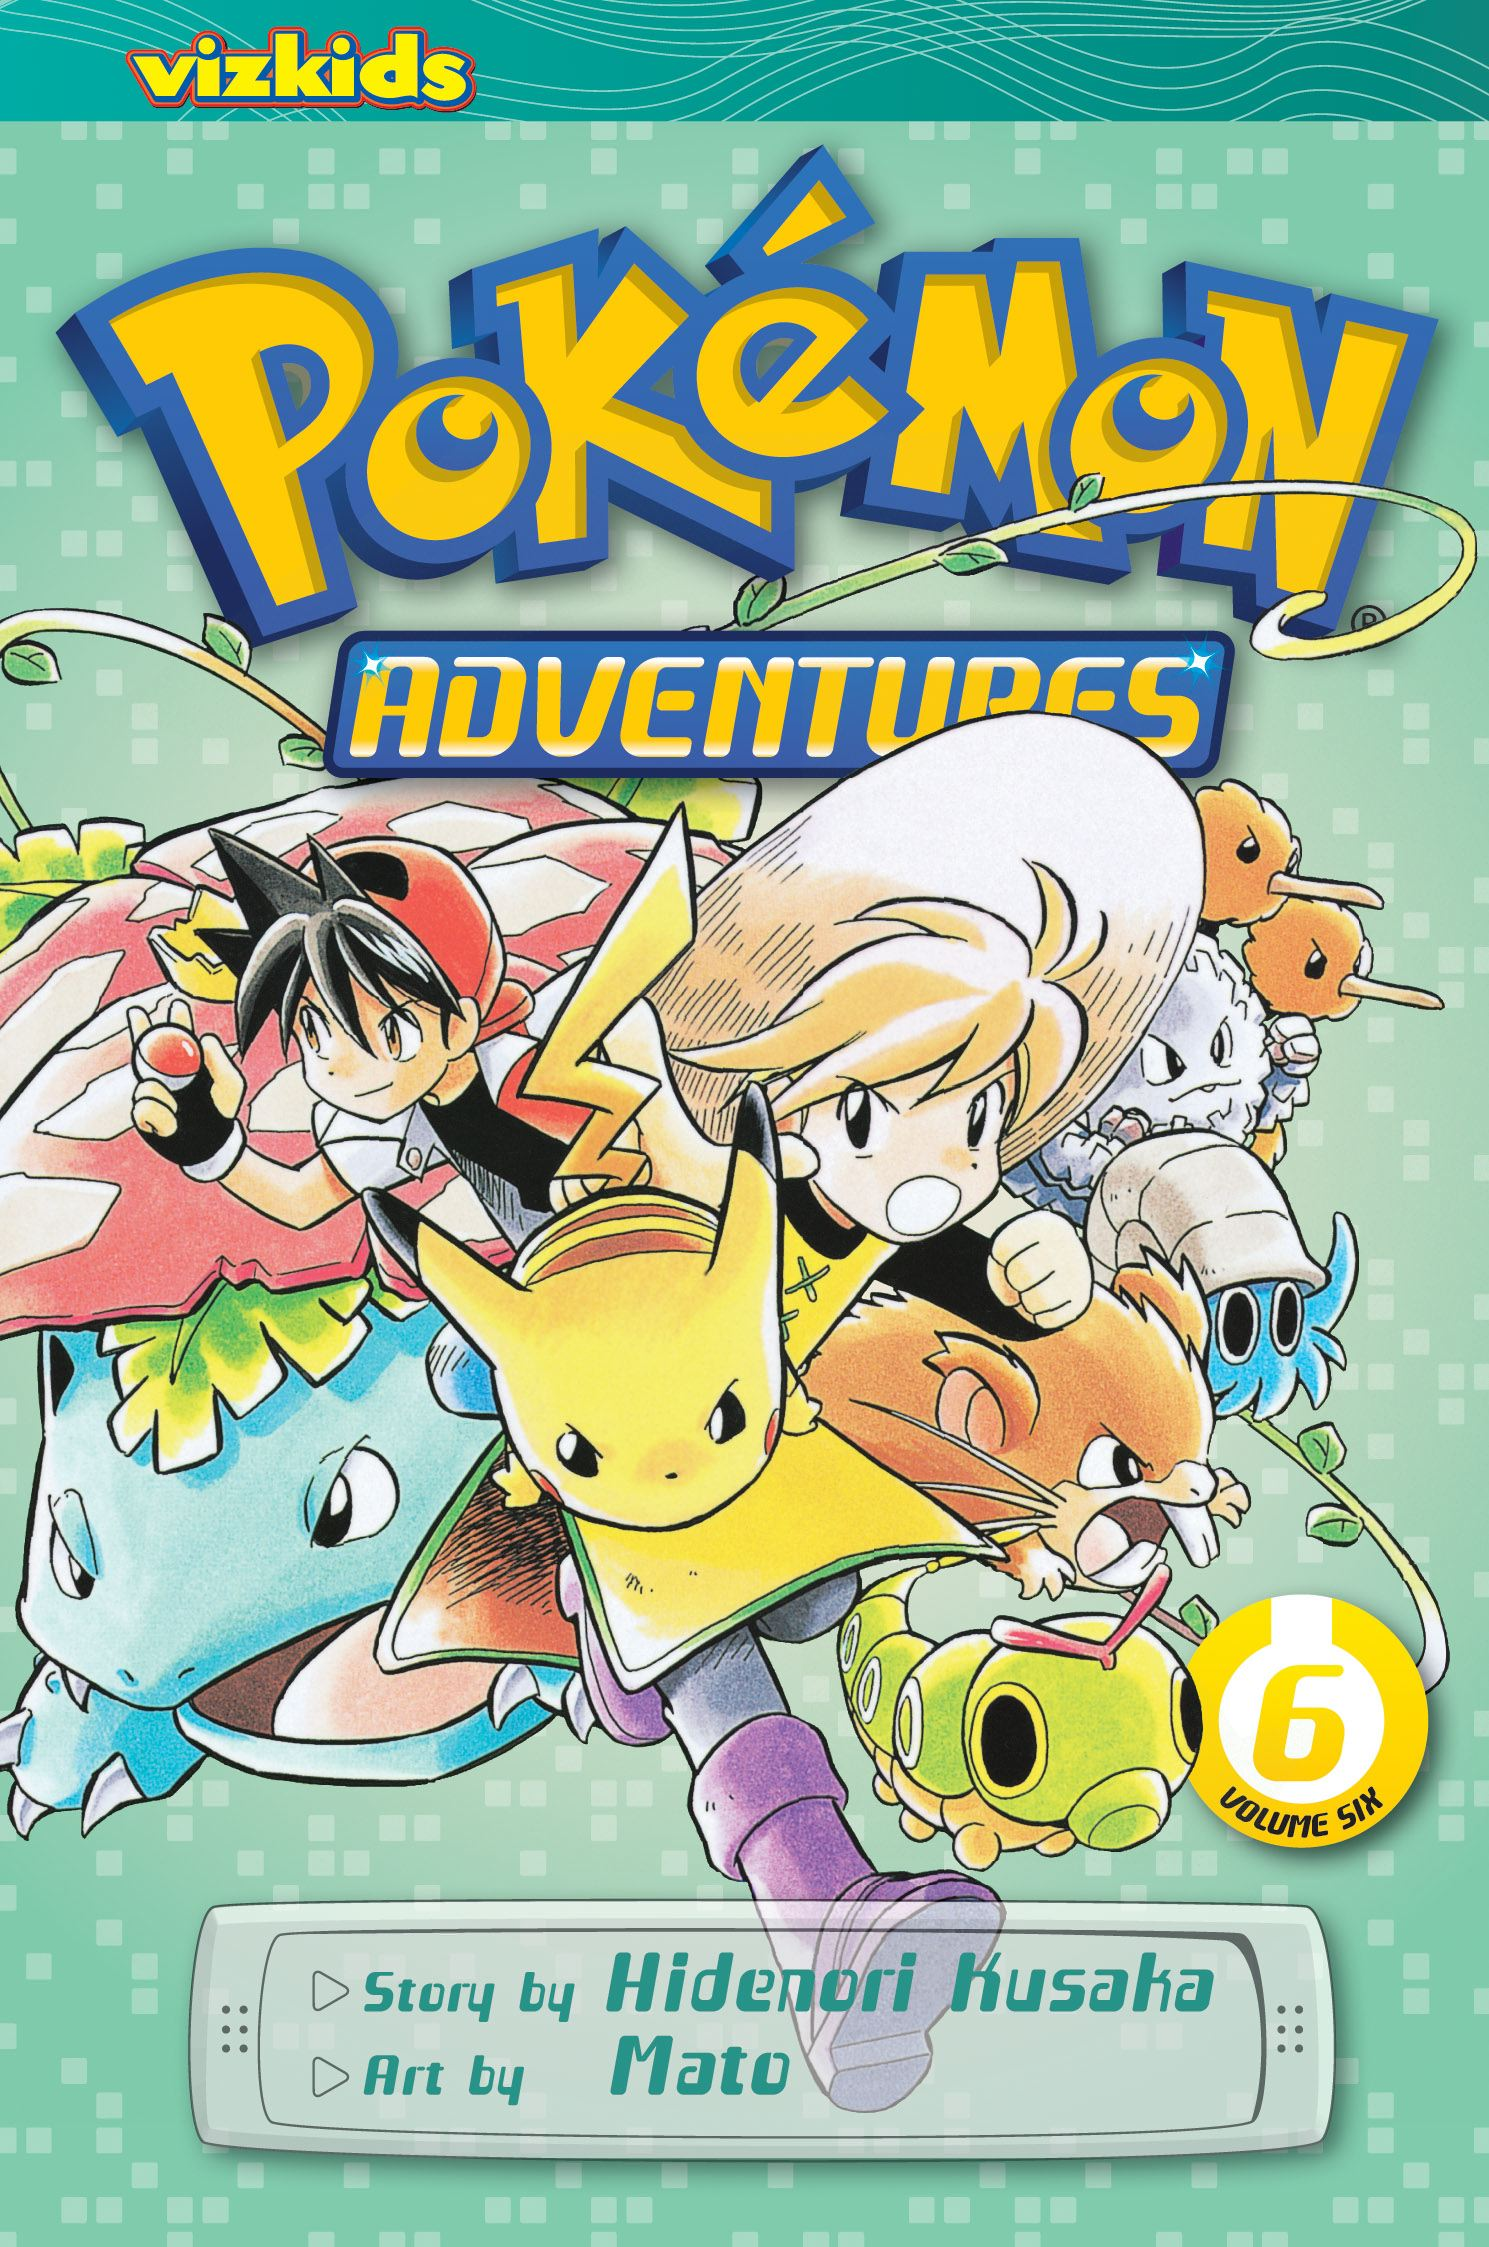 Pokemon-adventures-vol-6-2nd-edition-9781421530598_hr